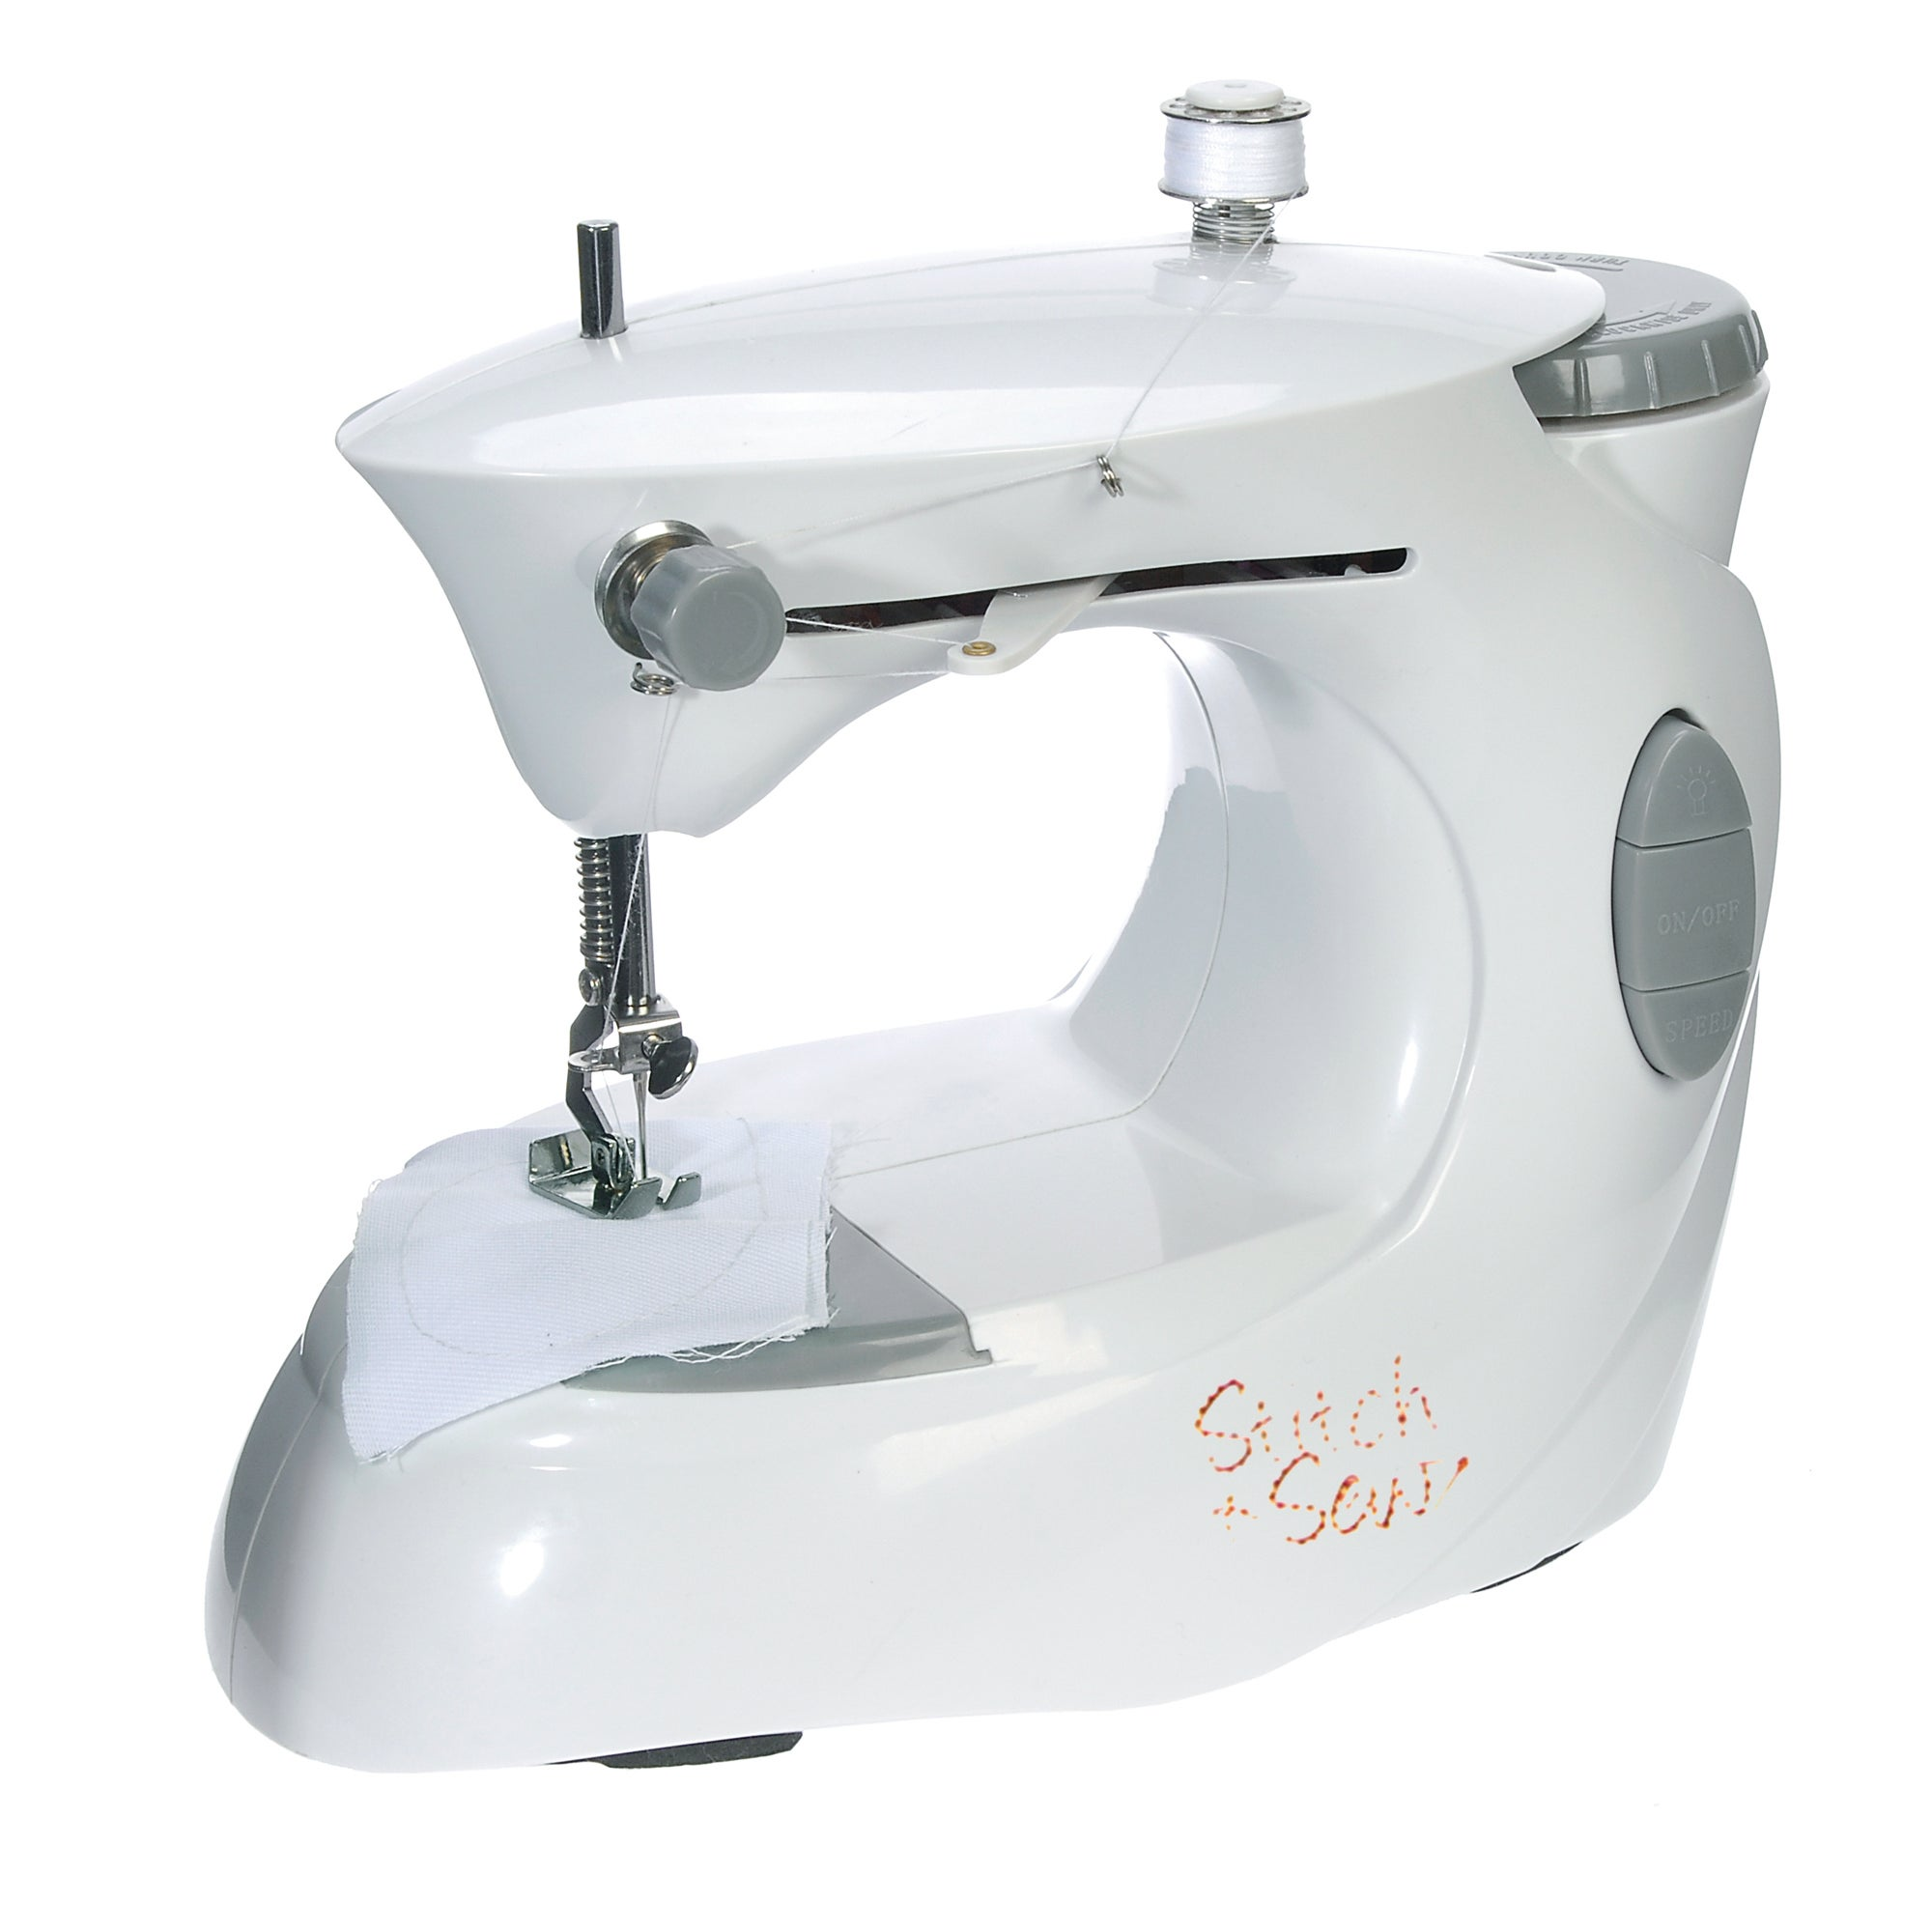 Mini Stitch and Sew Sewing Machine